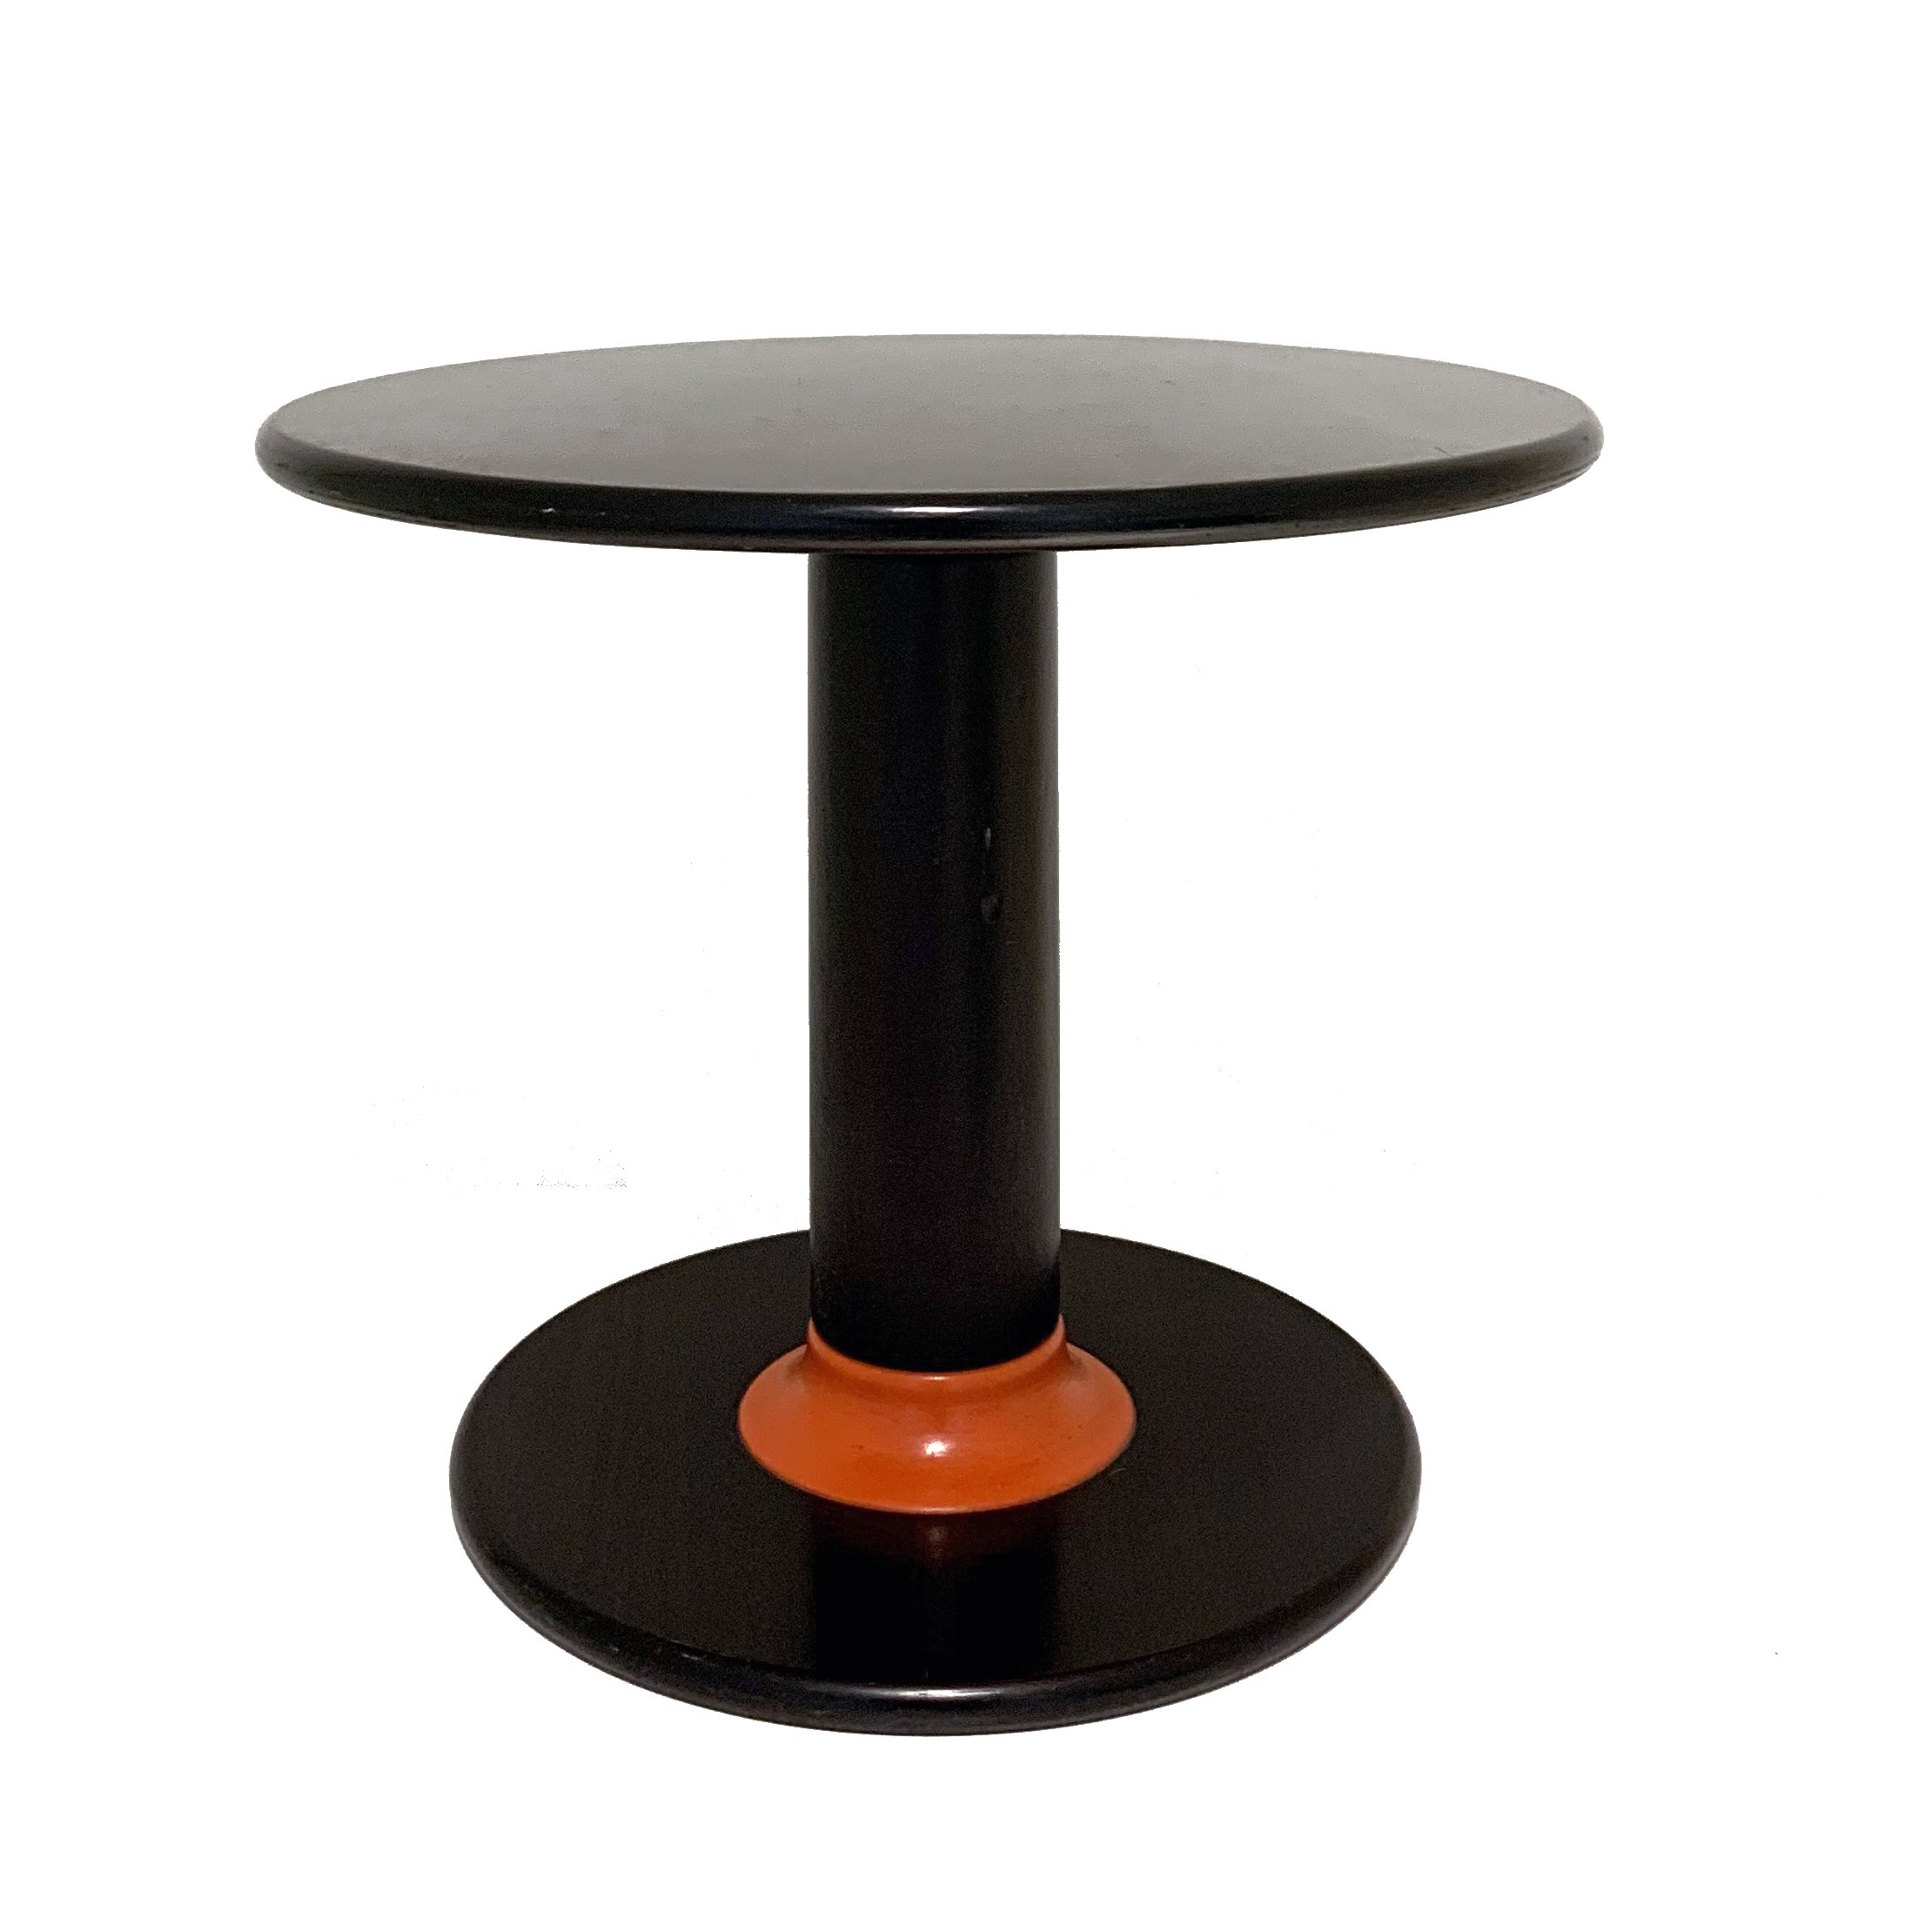 Rocchettone Coffee Table By Ettore Sottsass For Poltronova 1960s 112019